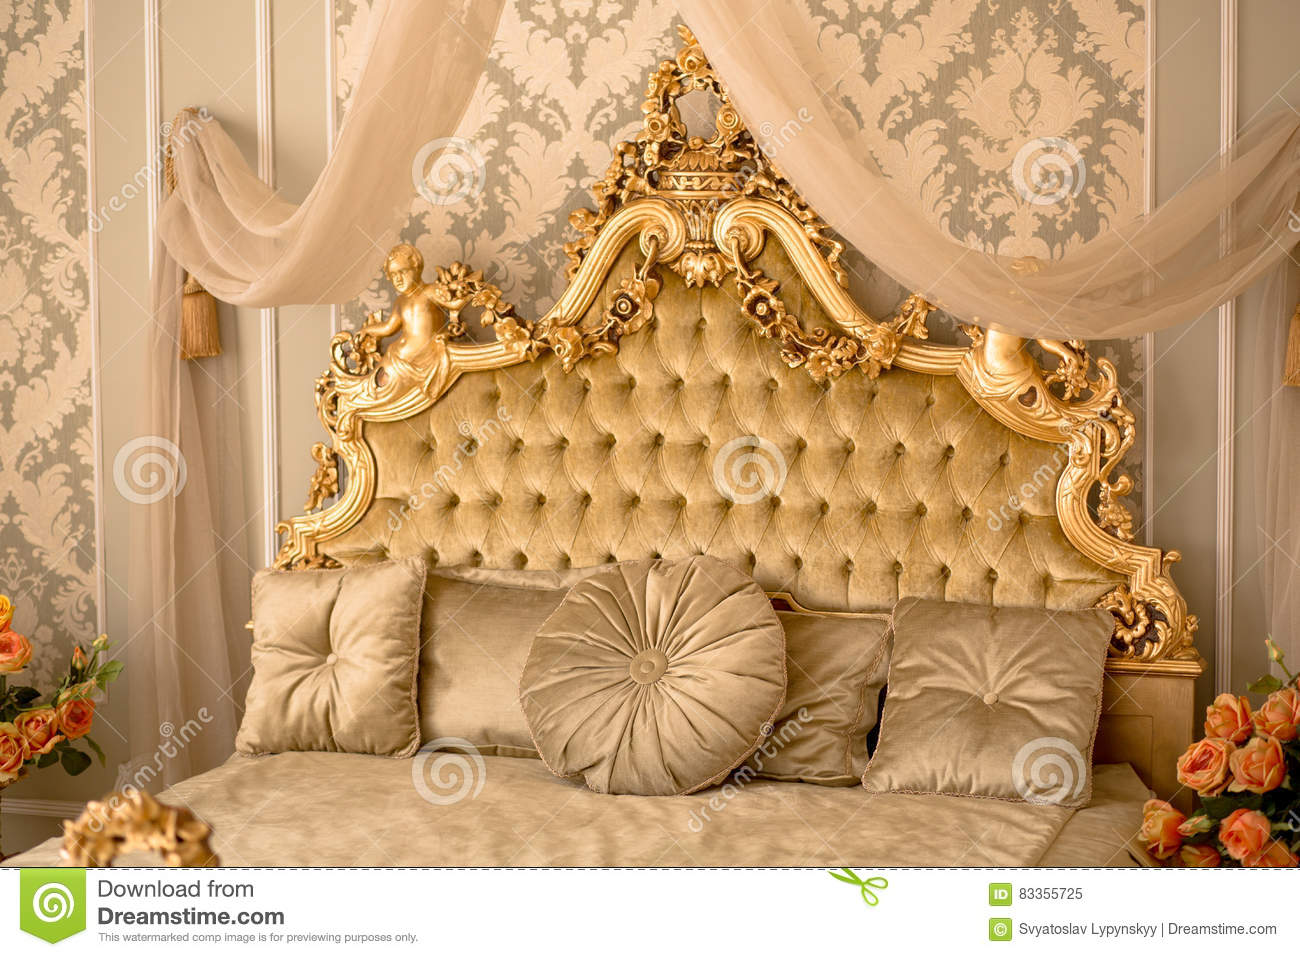 Royal bedroom interior stock image. Image of antique - 83355725